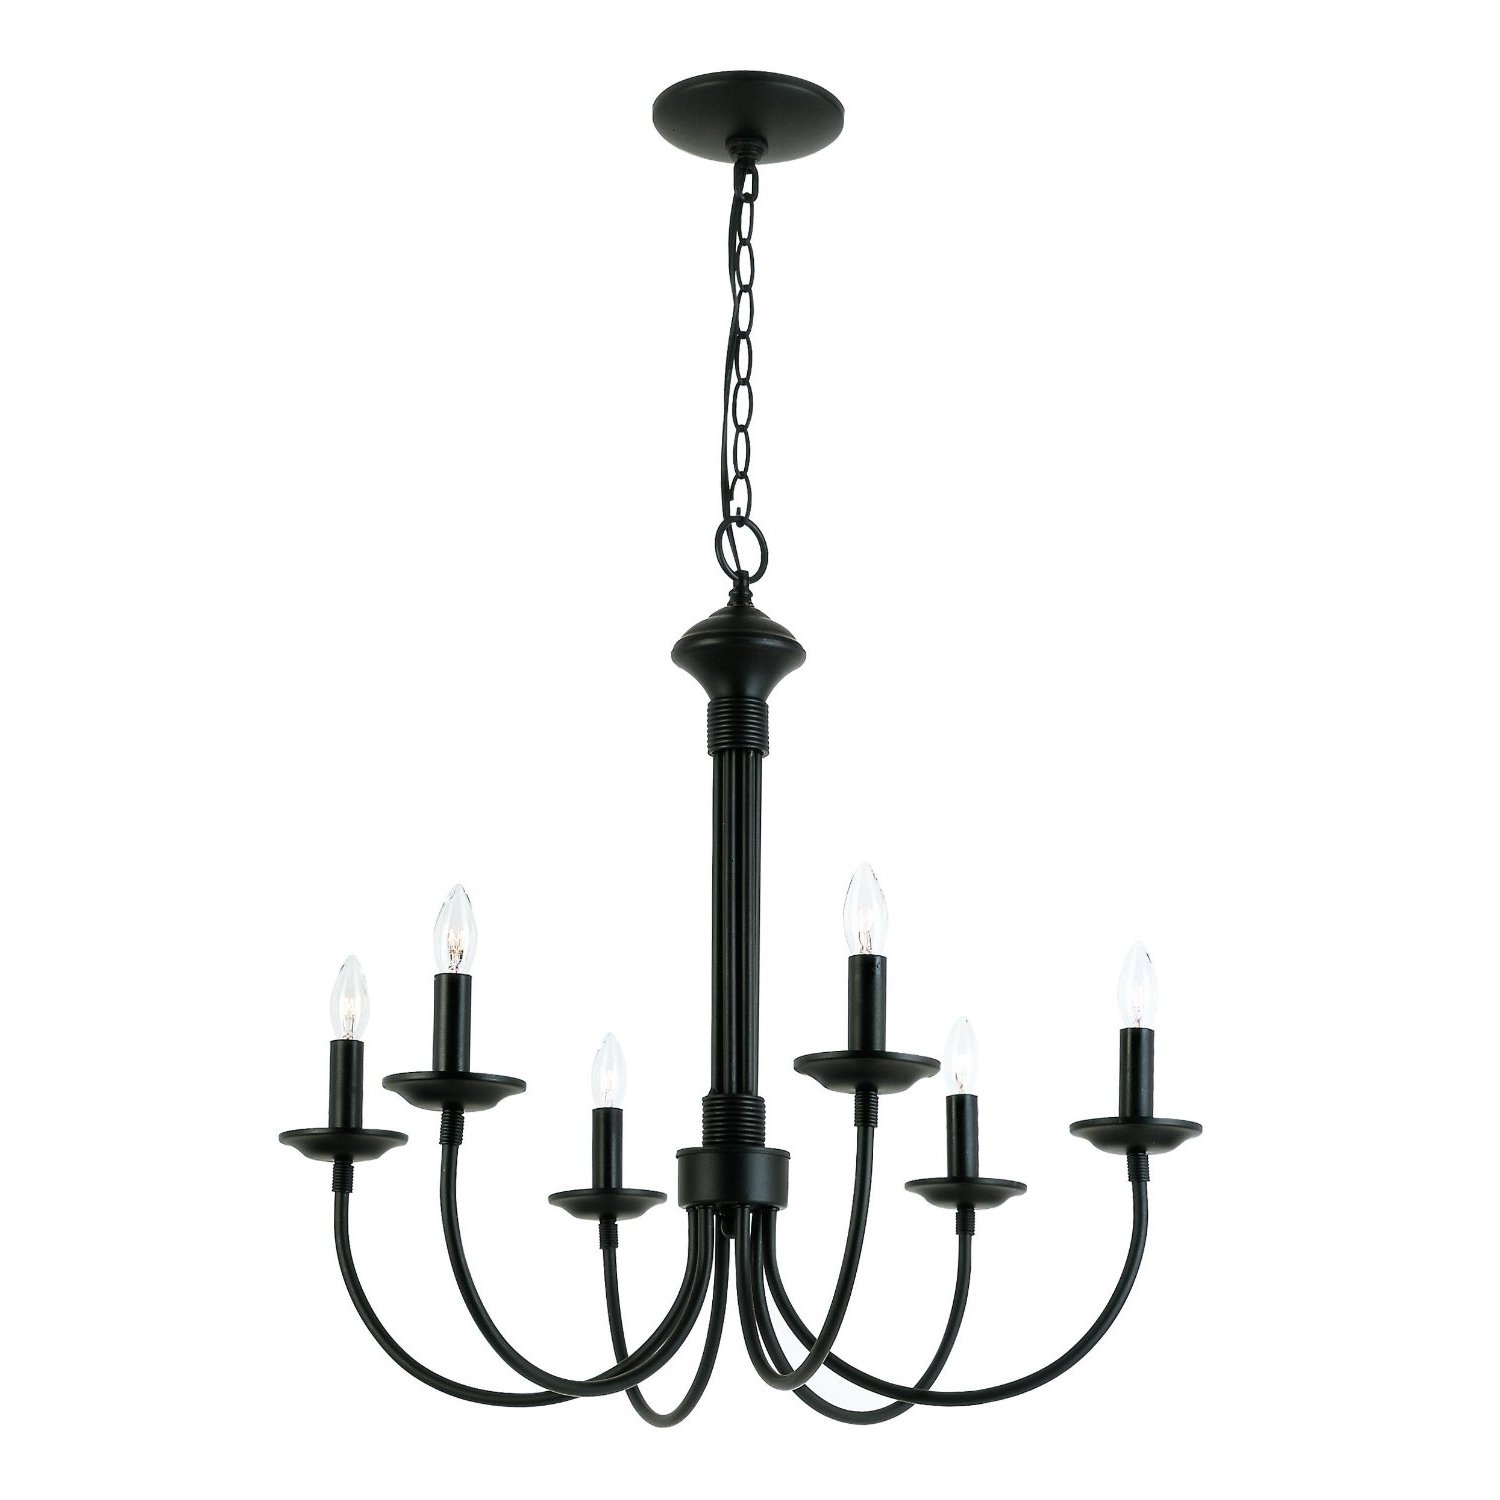 Charlton Home Blue Heron 6 Light Candle Style Chandelier Reviews Pertaining To Candle Light Chandelier (Image 7 of 15)